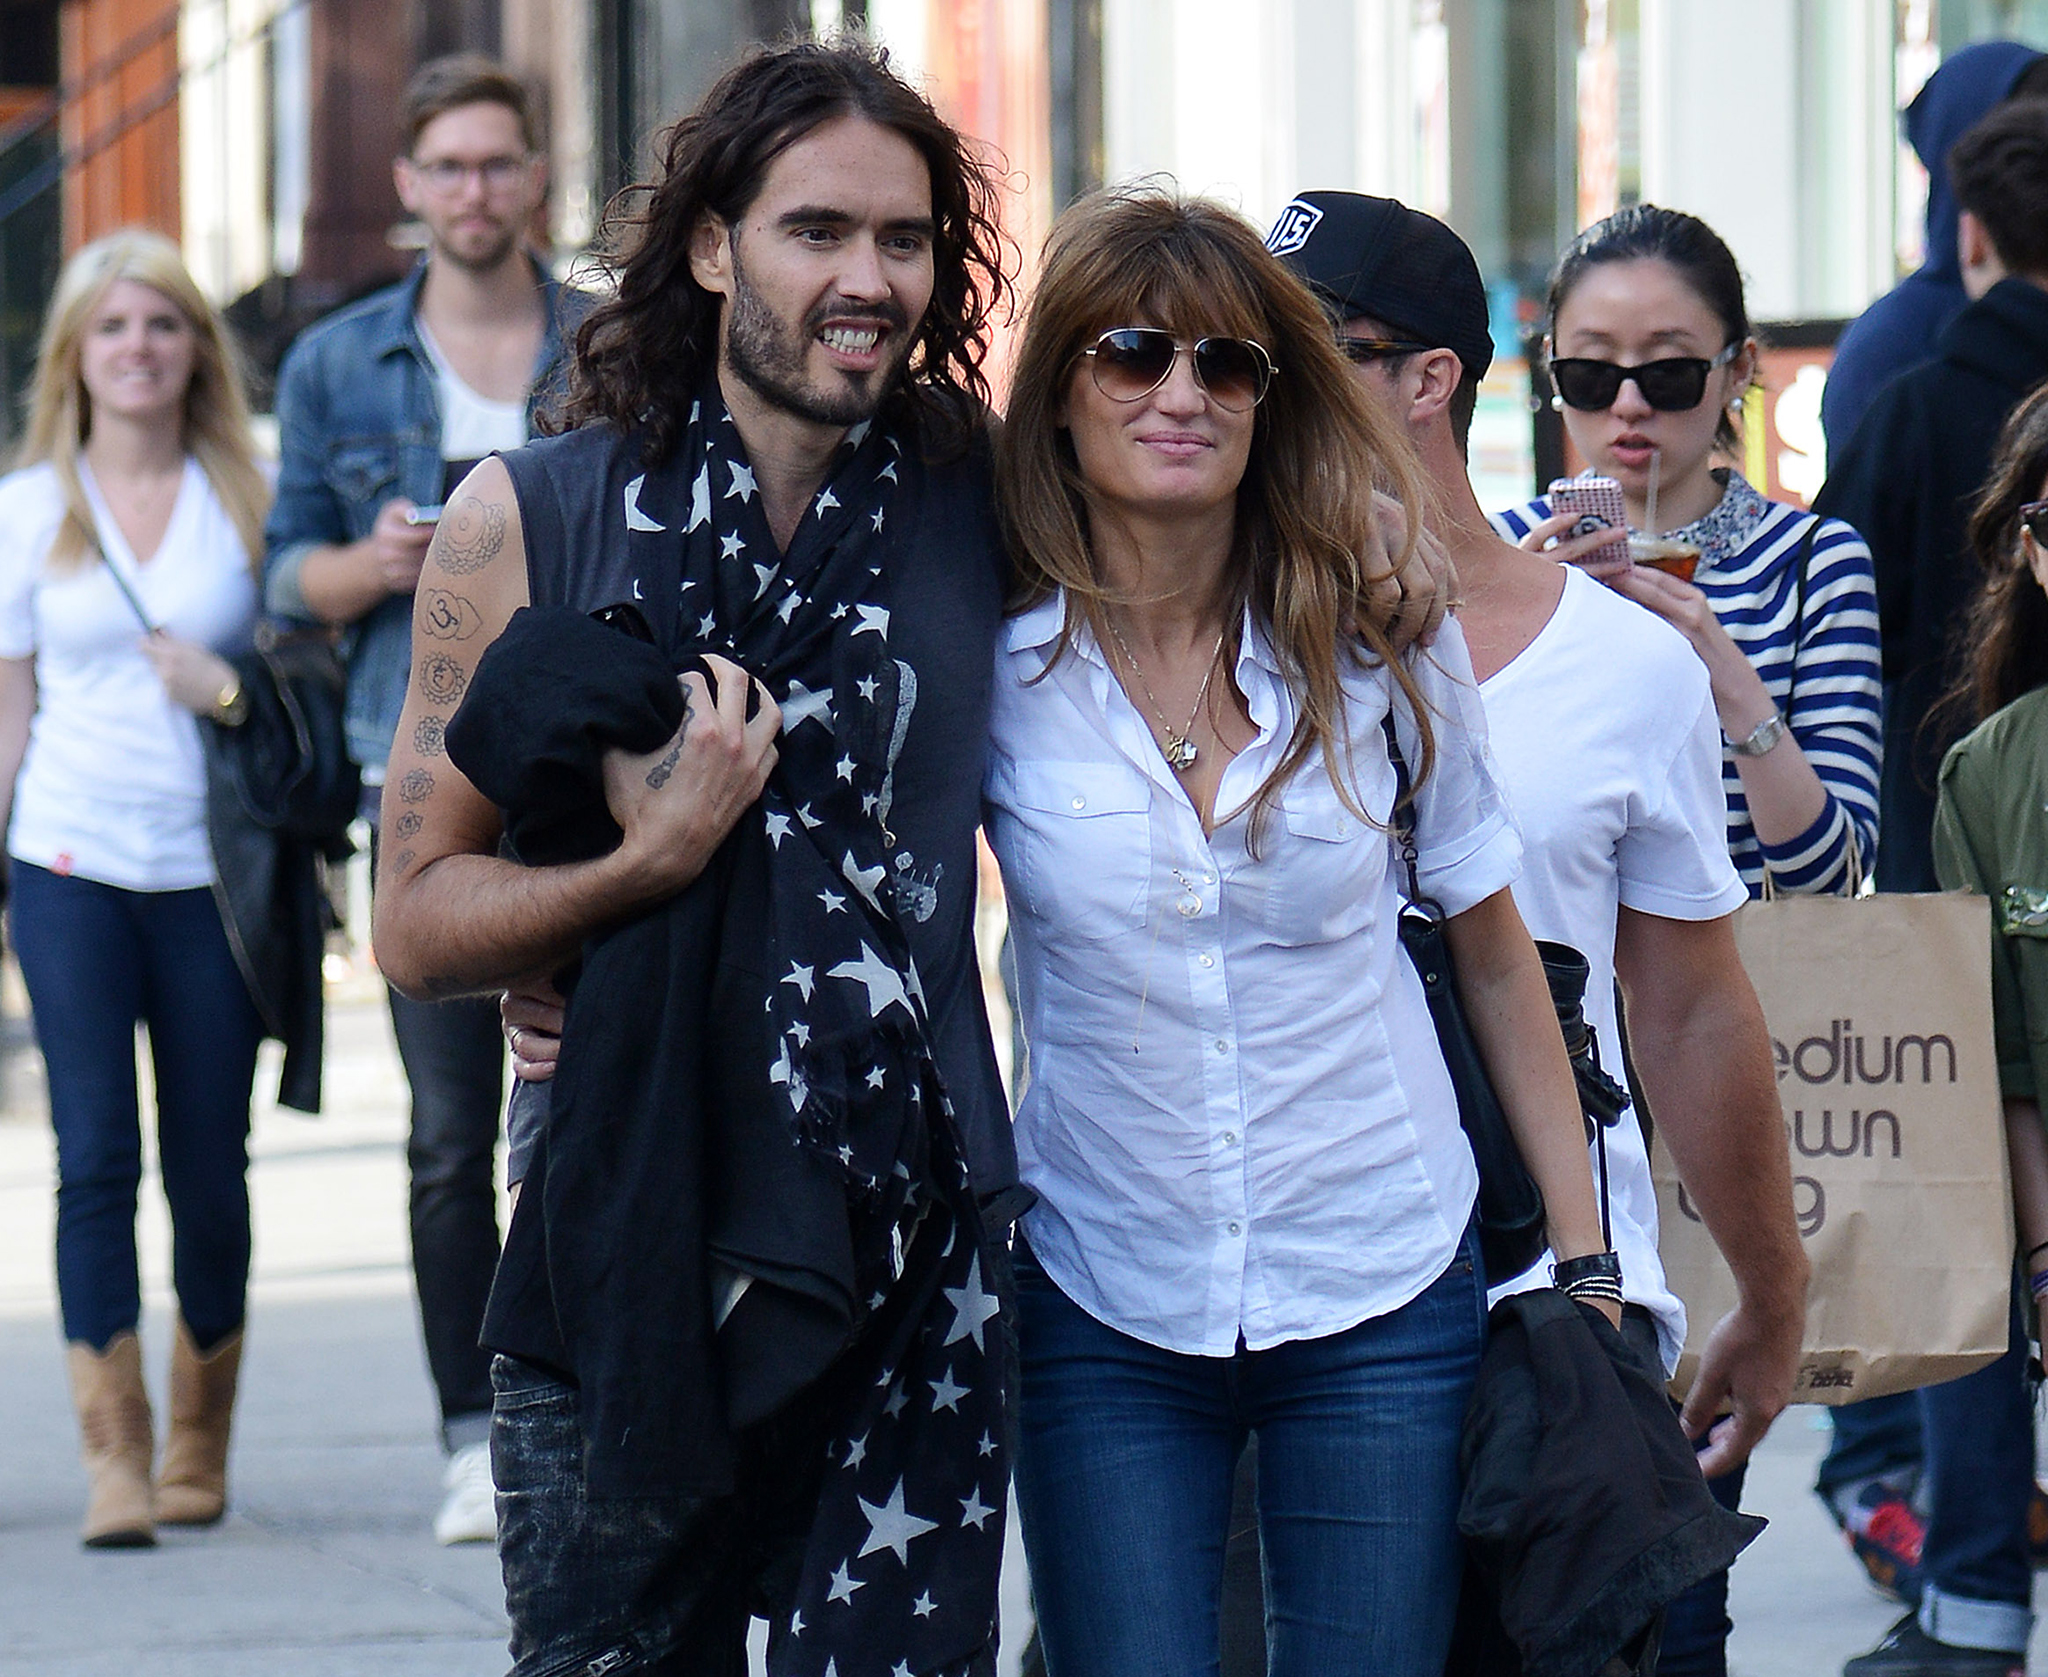 Russell Brand and Jemima Khan in New York City on Sunday. (Splash News)